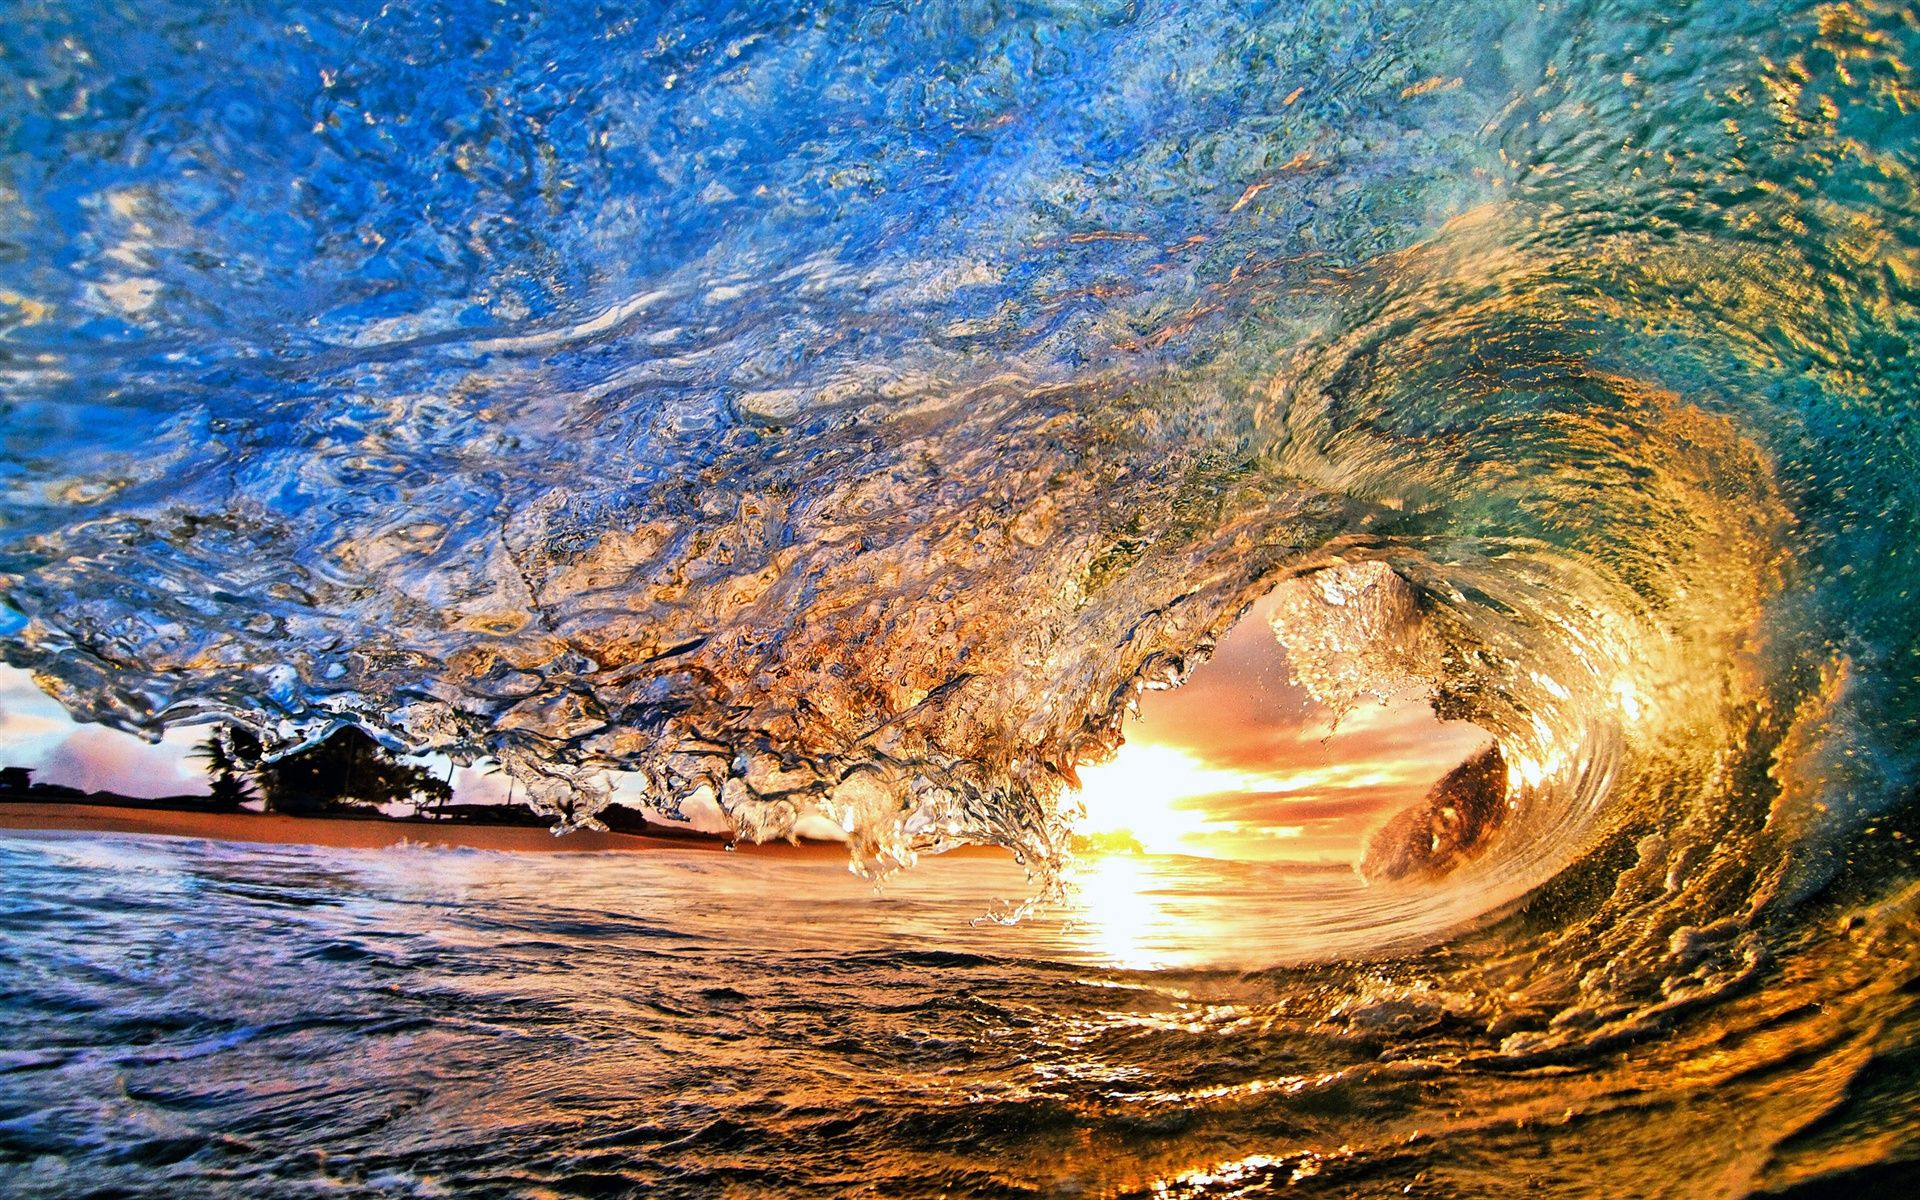 Under The Sun The Sea Waves Hd Wallpapers Desktop Waves Photography Waves Wallpaper Waves Photos